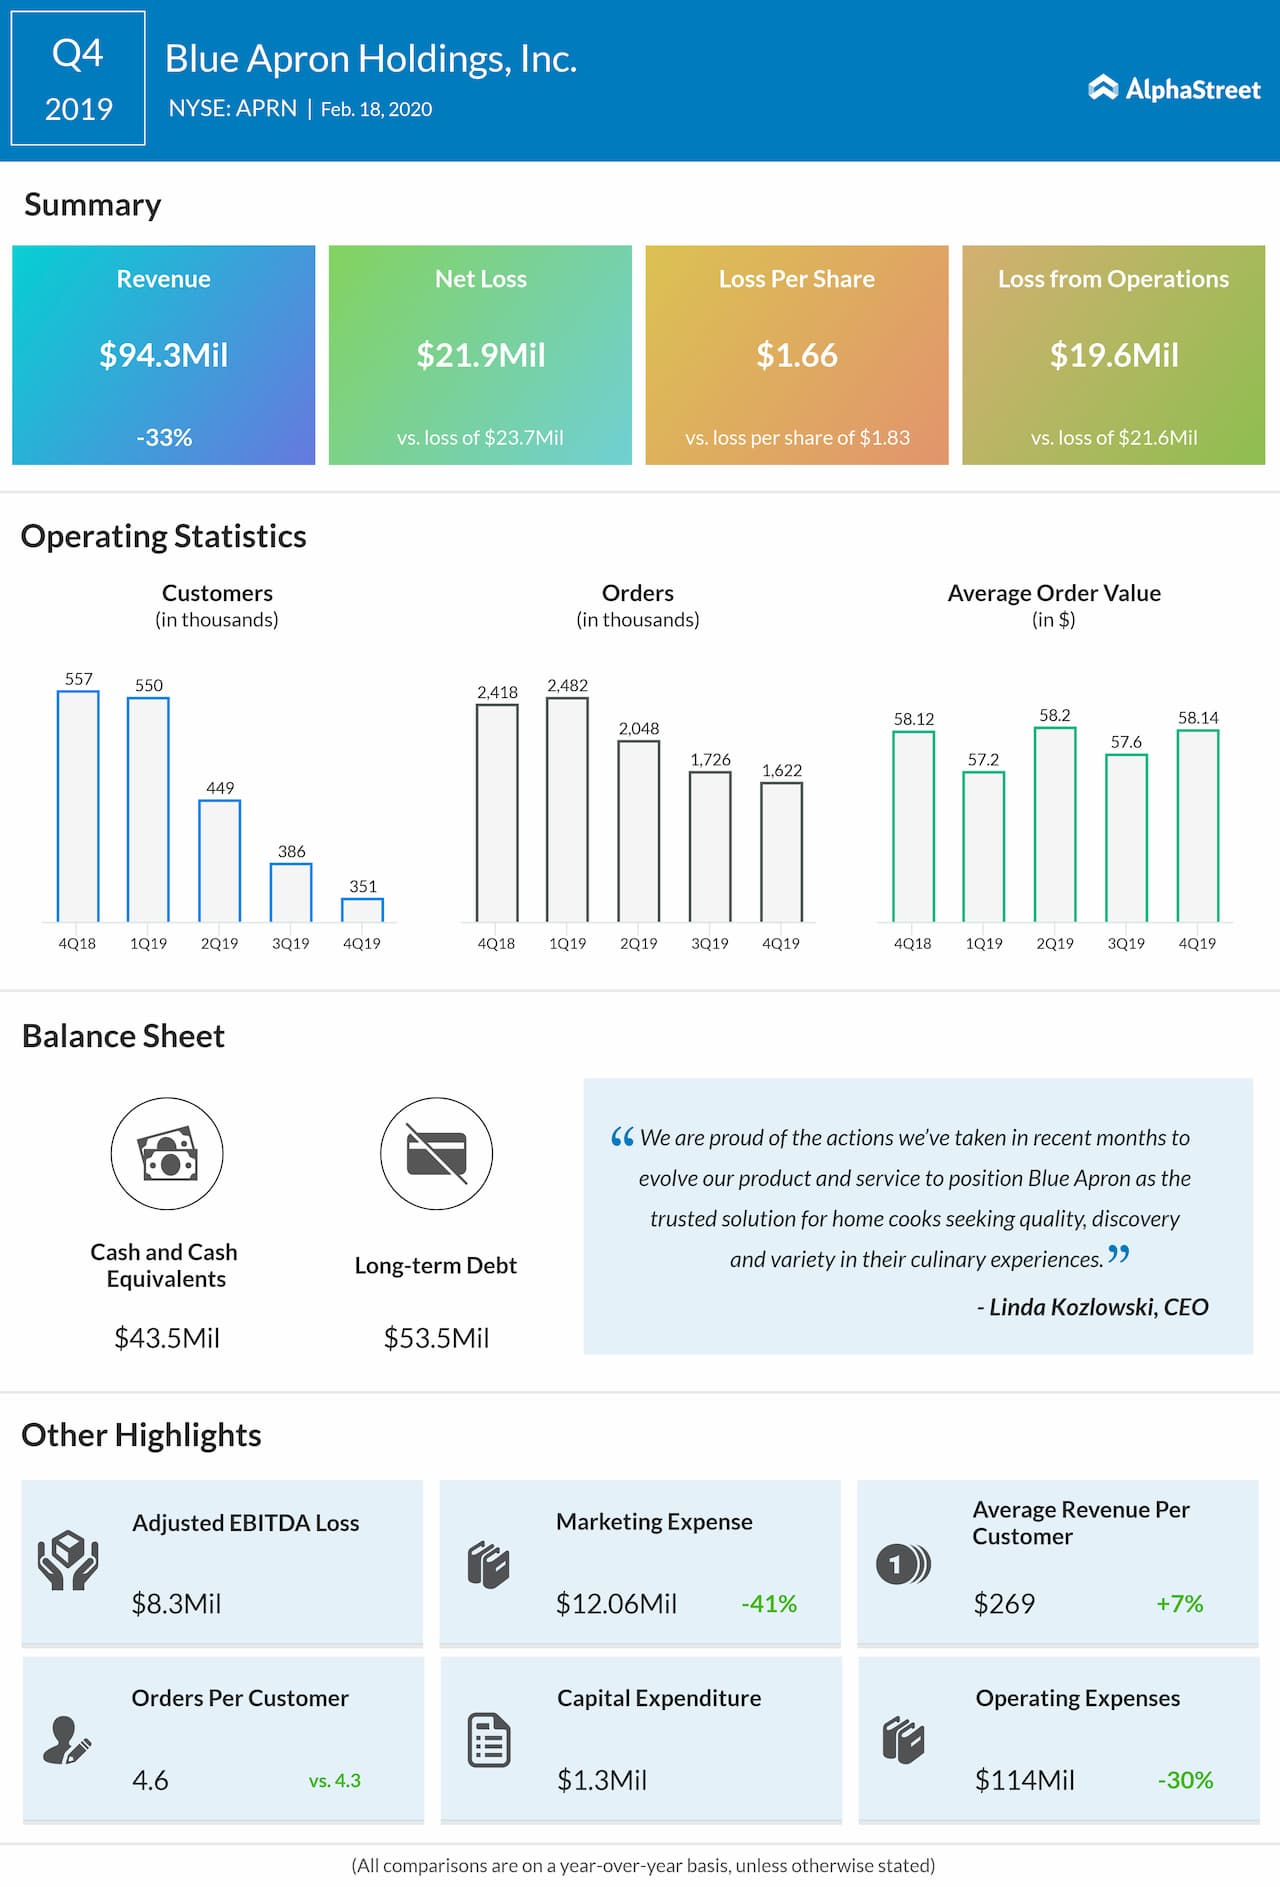 Blue Apron Holdings (APRN) Q4 2019 earnings review